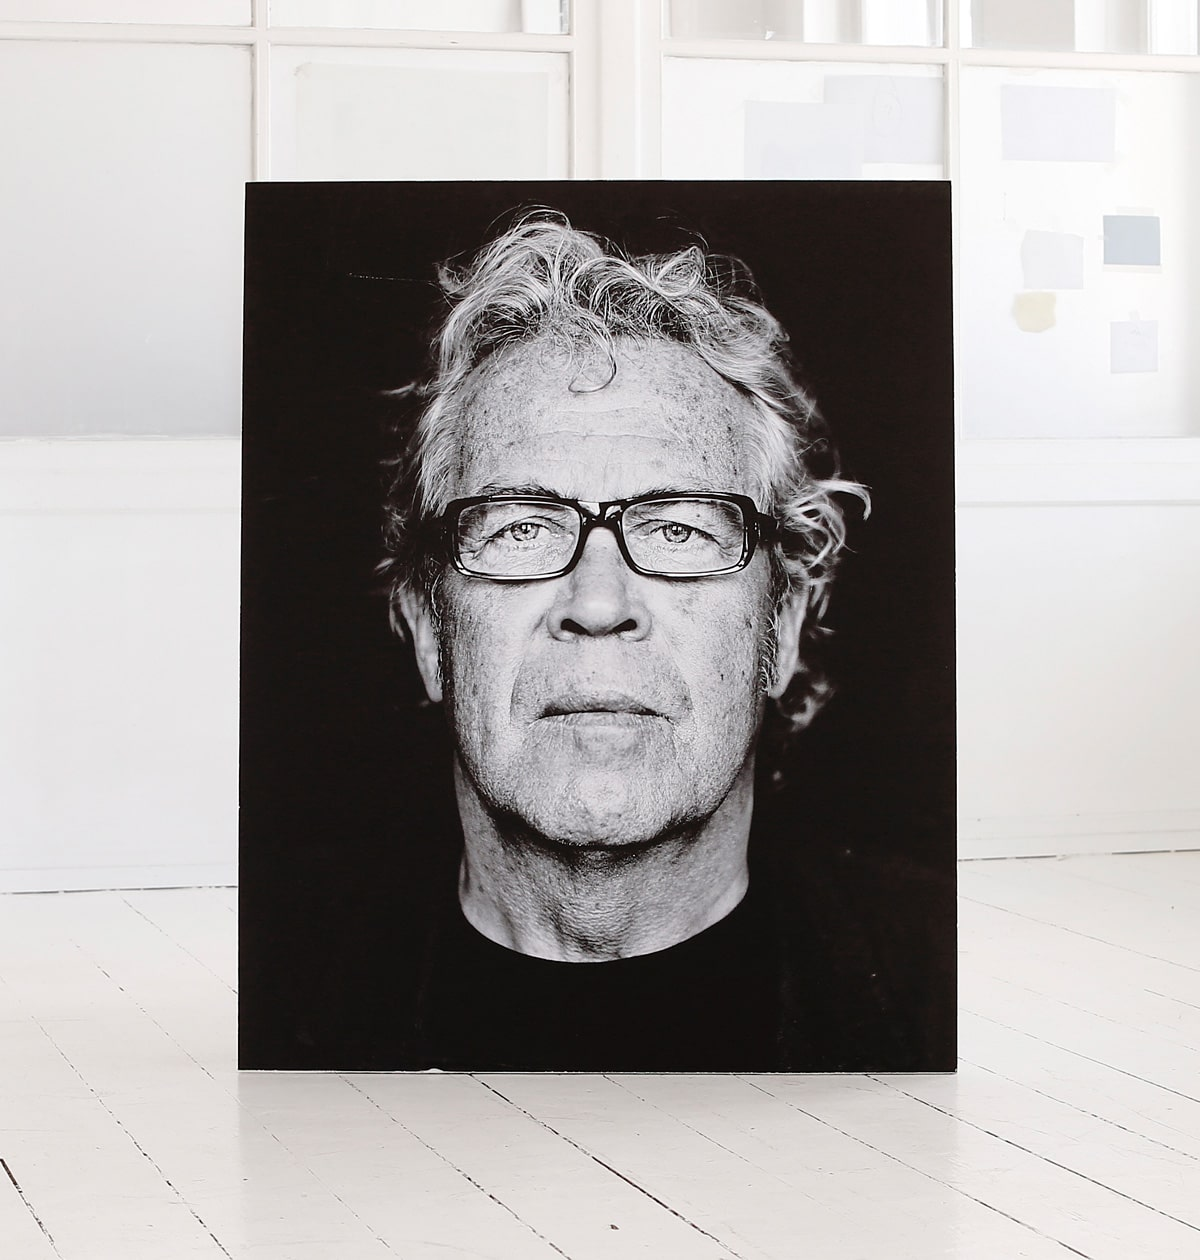 Jørgen Leth, Print, portrait by photographer Morten Larsen